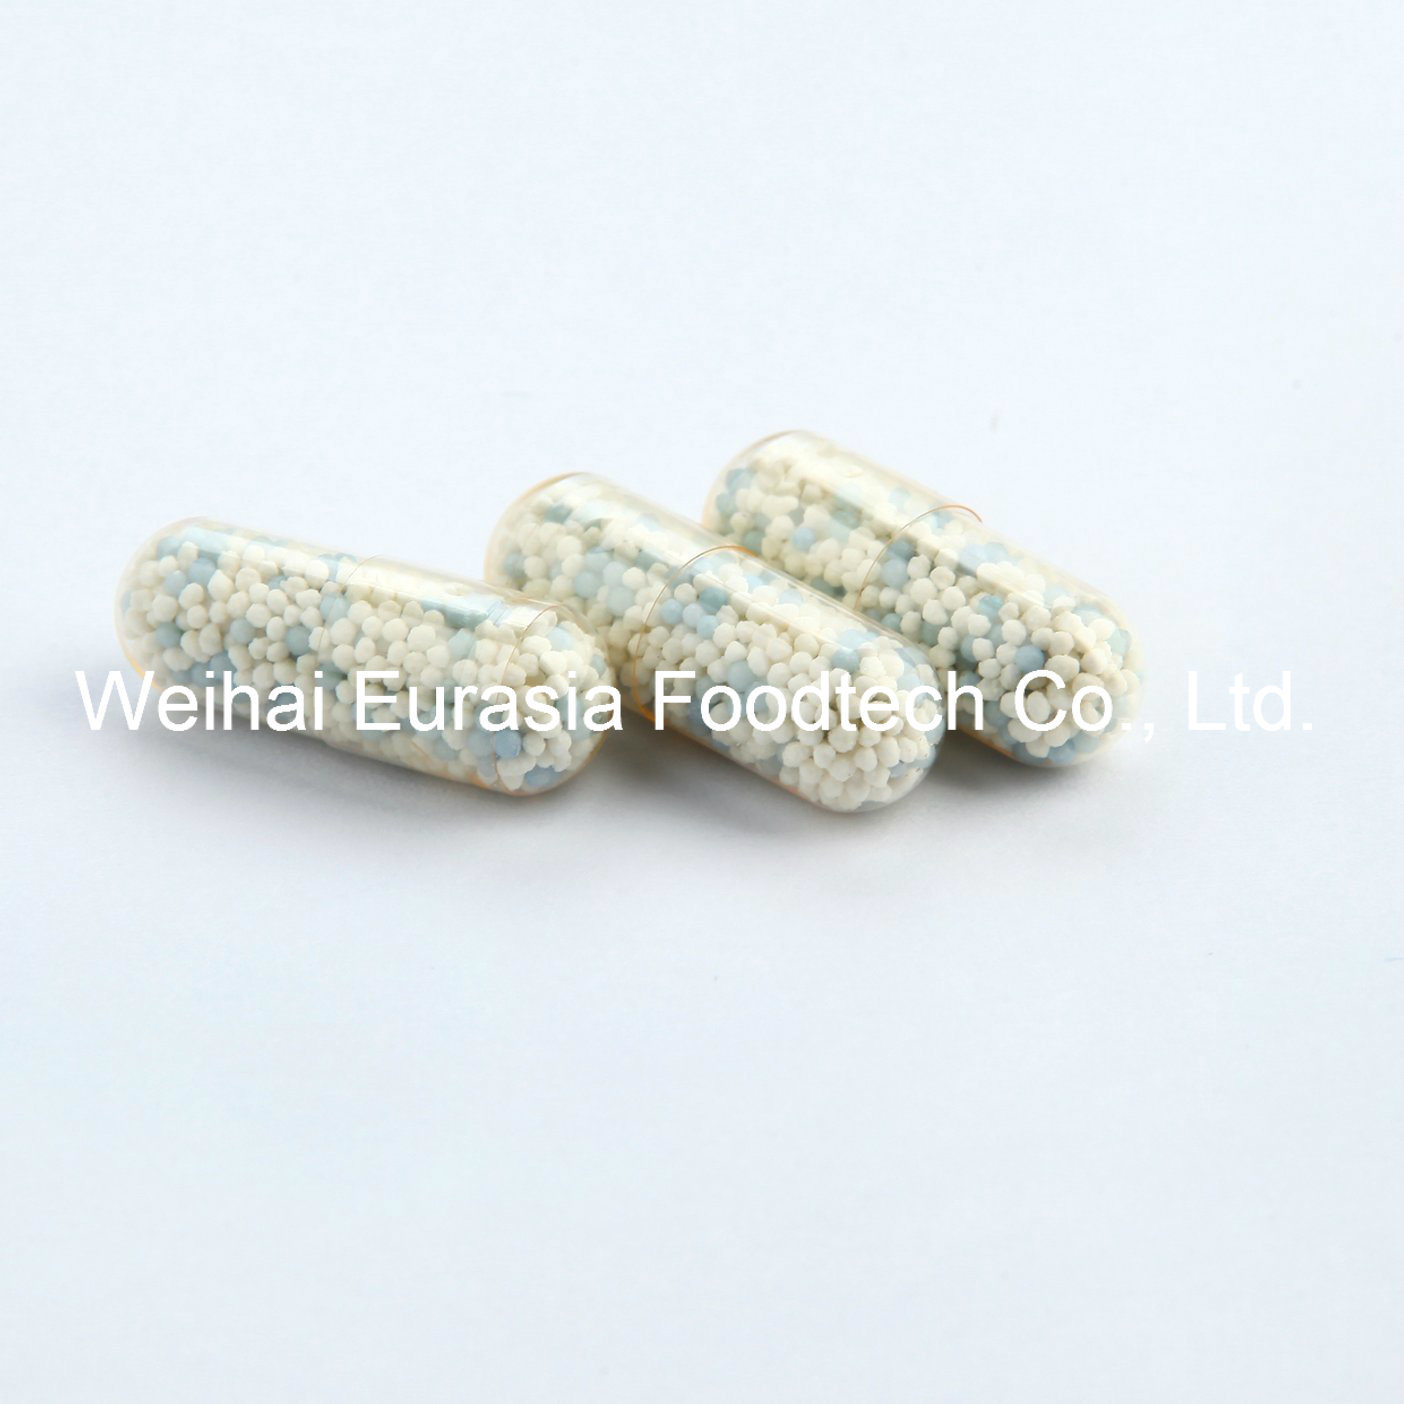 Potassium and Magnesium Sustained-Release Capsules